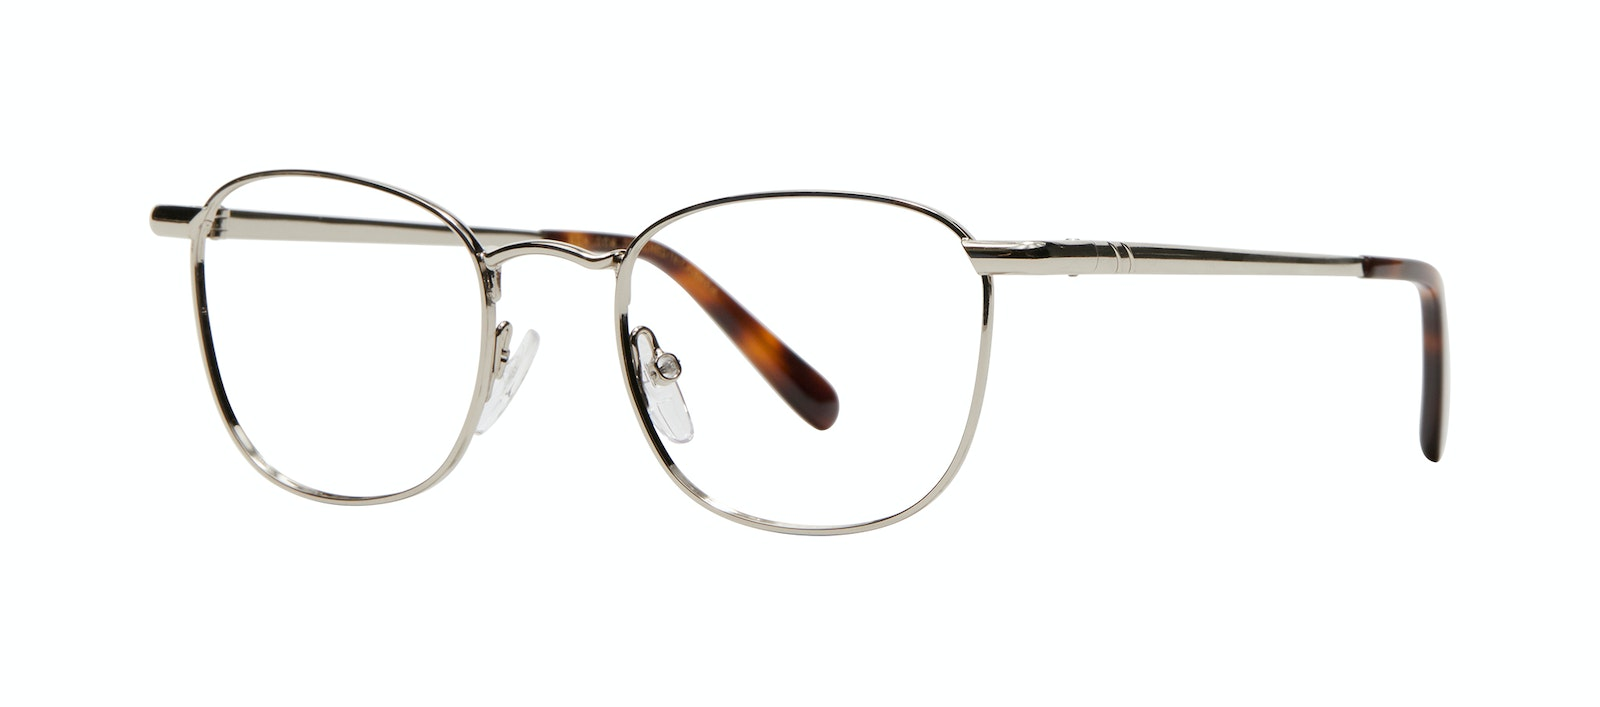 Affordable Fashion Glasses Square Eyeglasses Men Apex M Silver Tilt